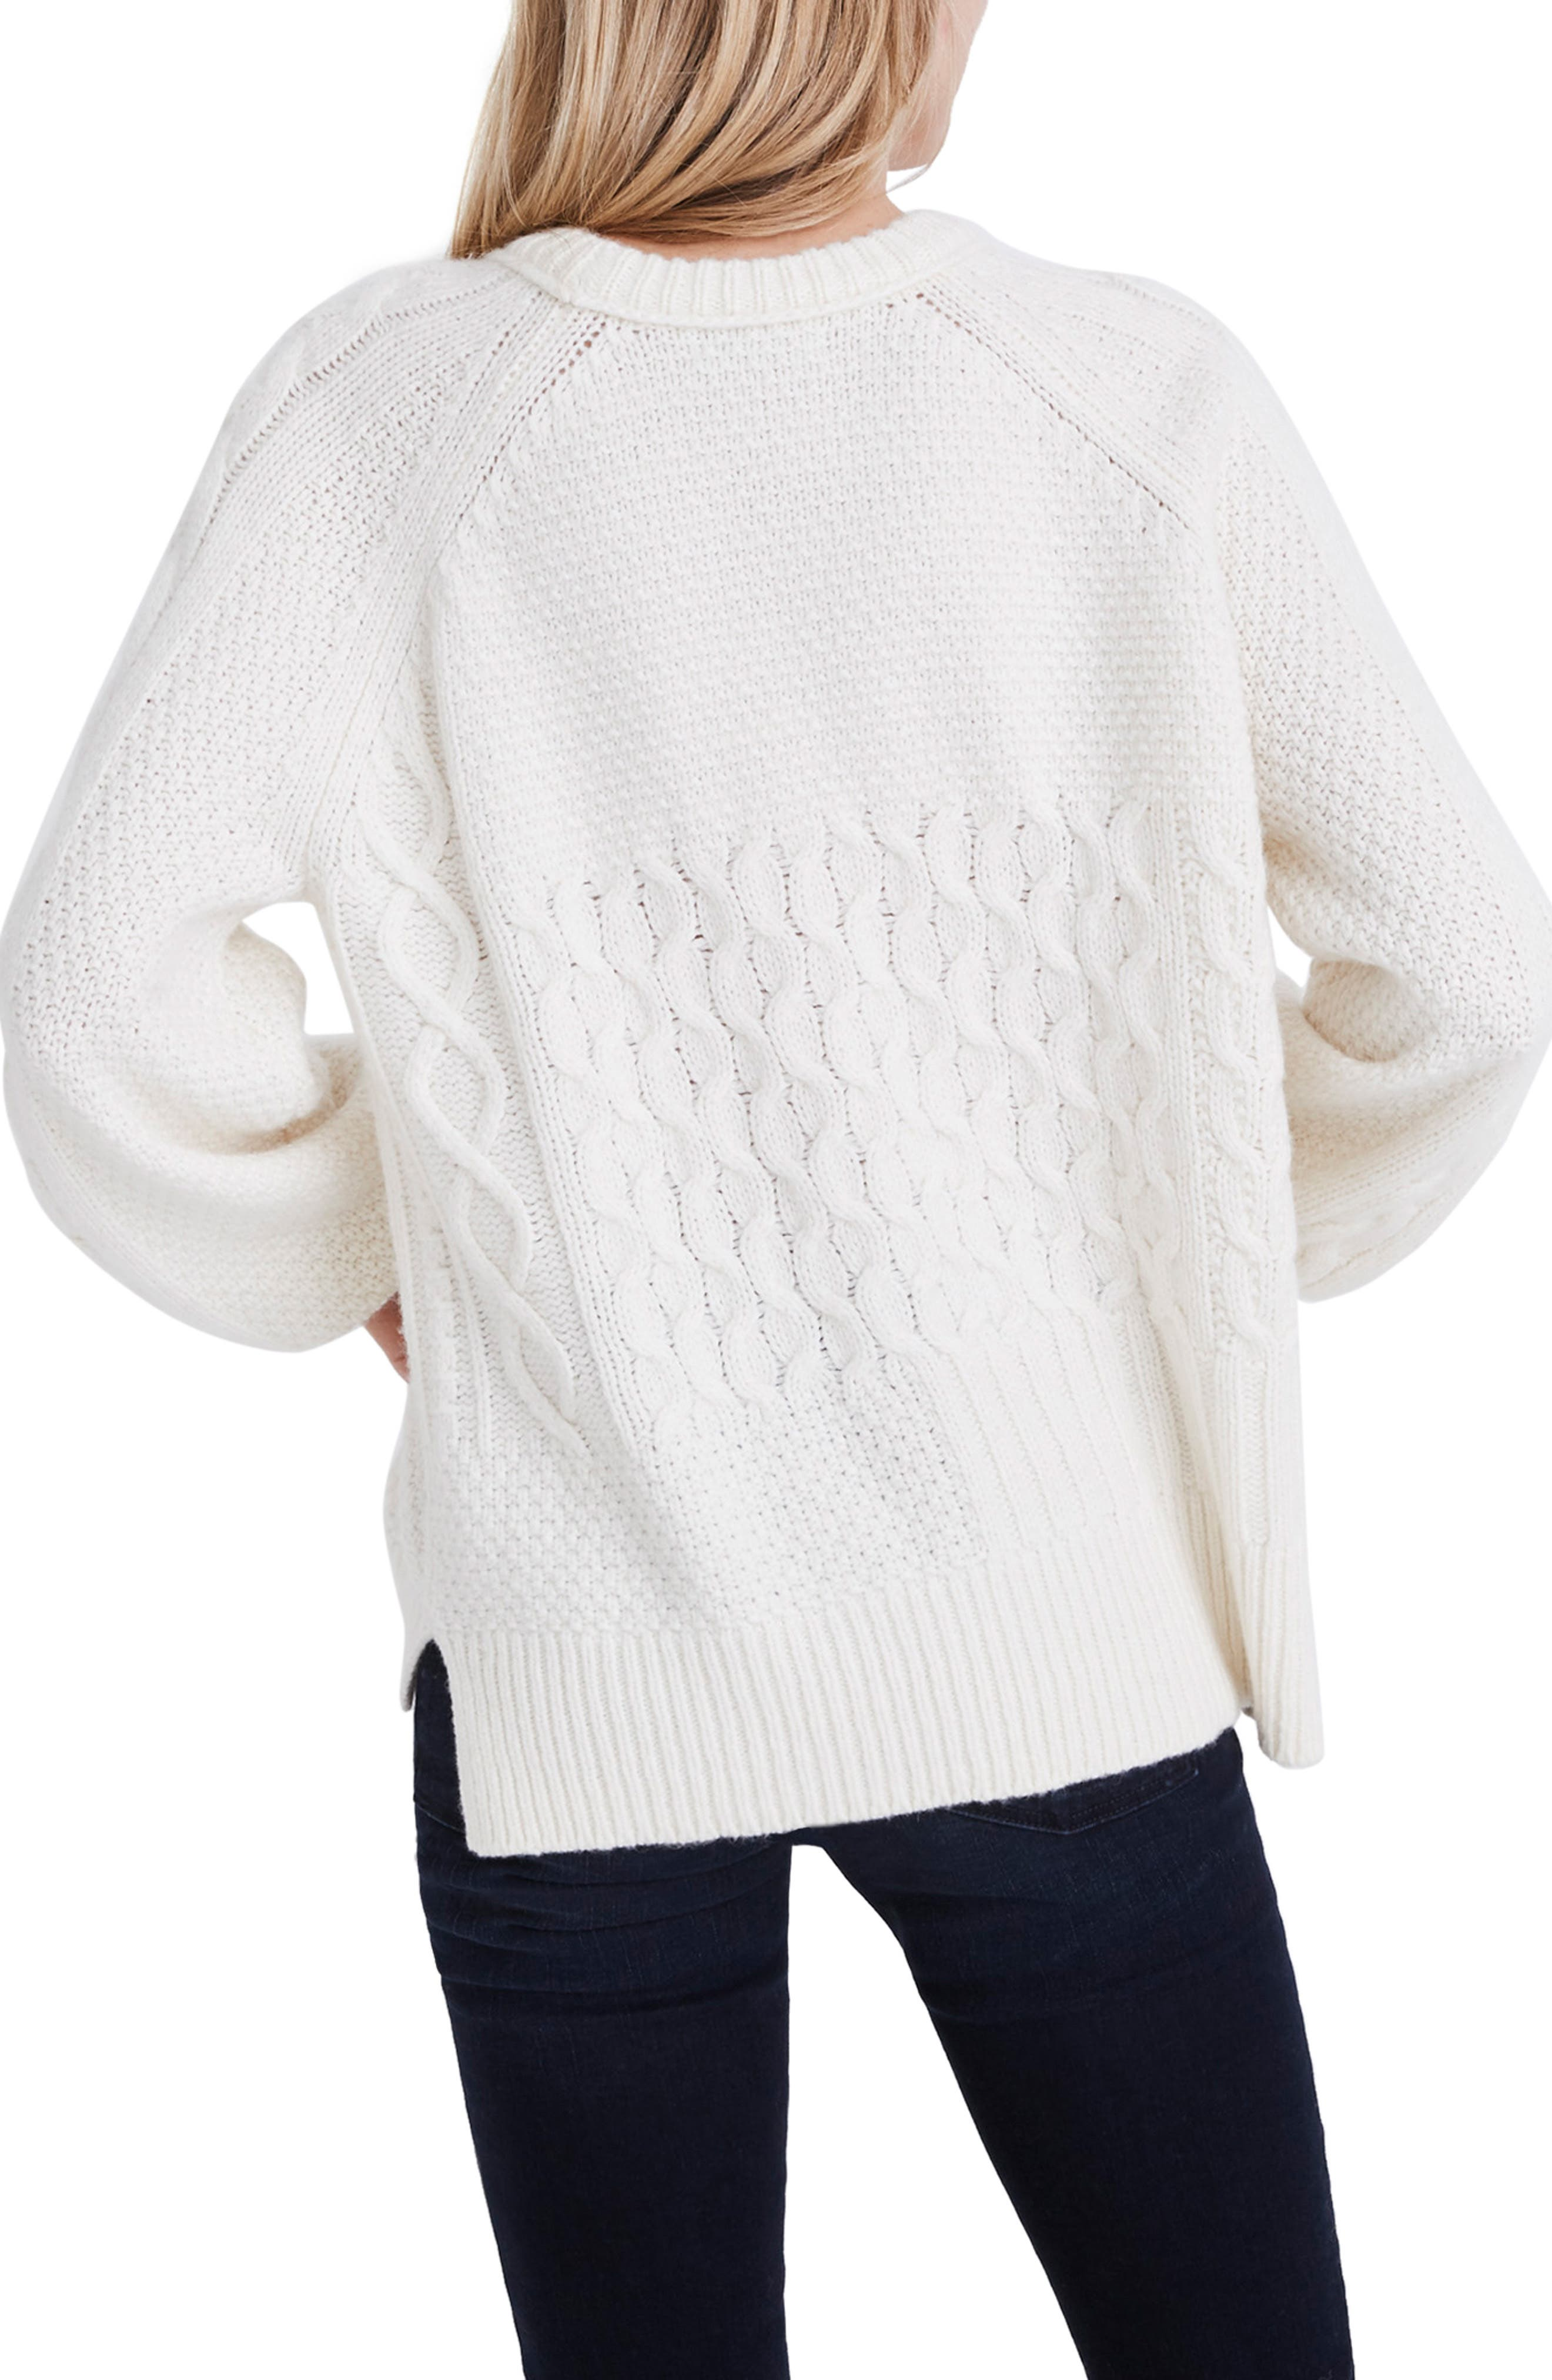 Copenhagen Cable Sweater,                             Alternate thumbnail 2, color,                             ANTIQUE CREAM